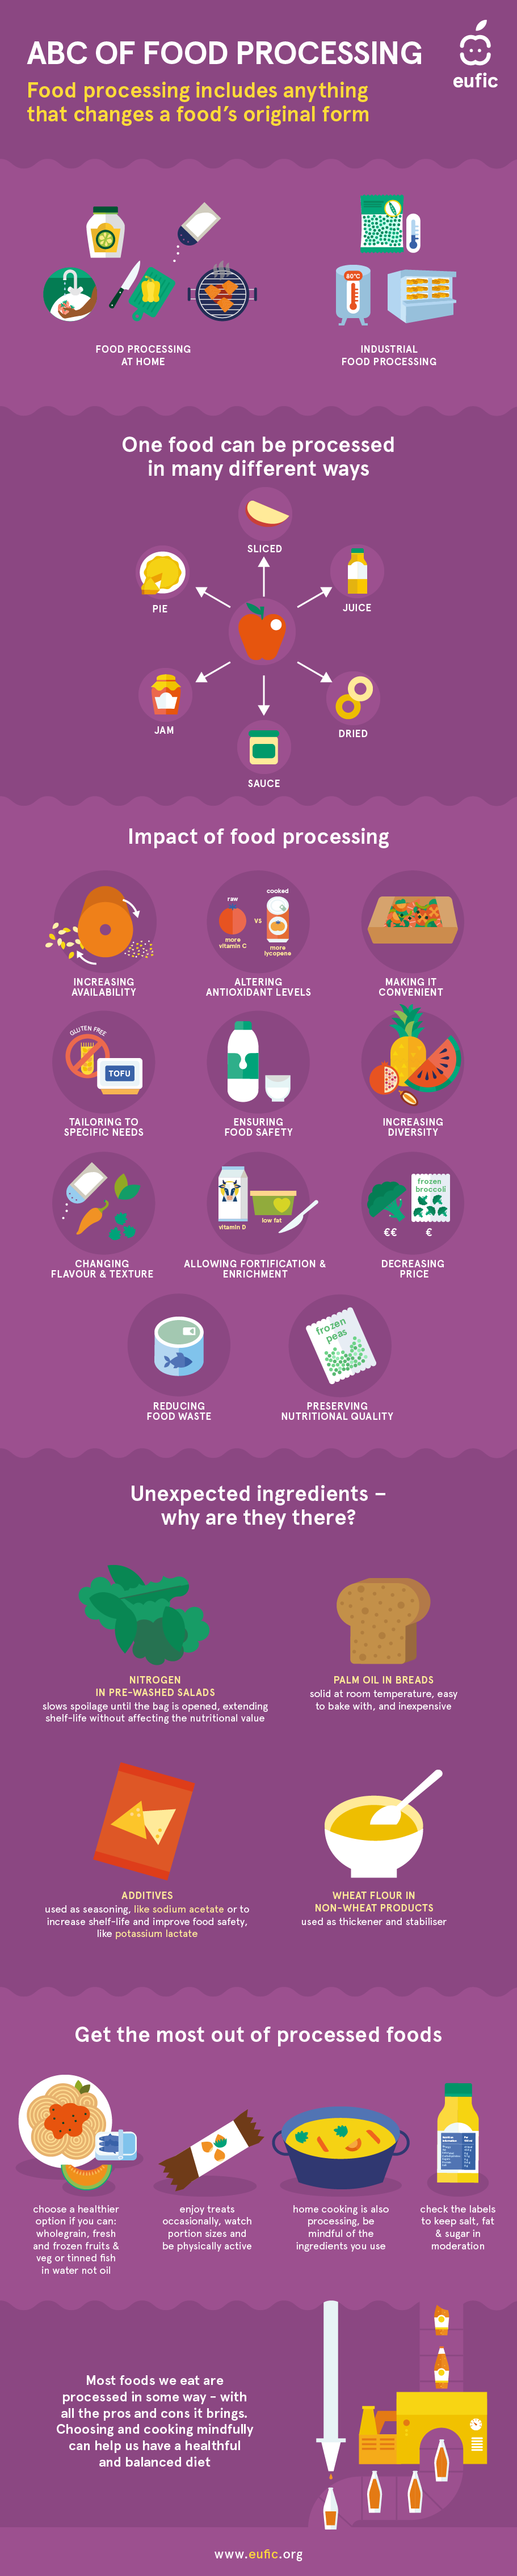 ABC on food processing (Infographic)